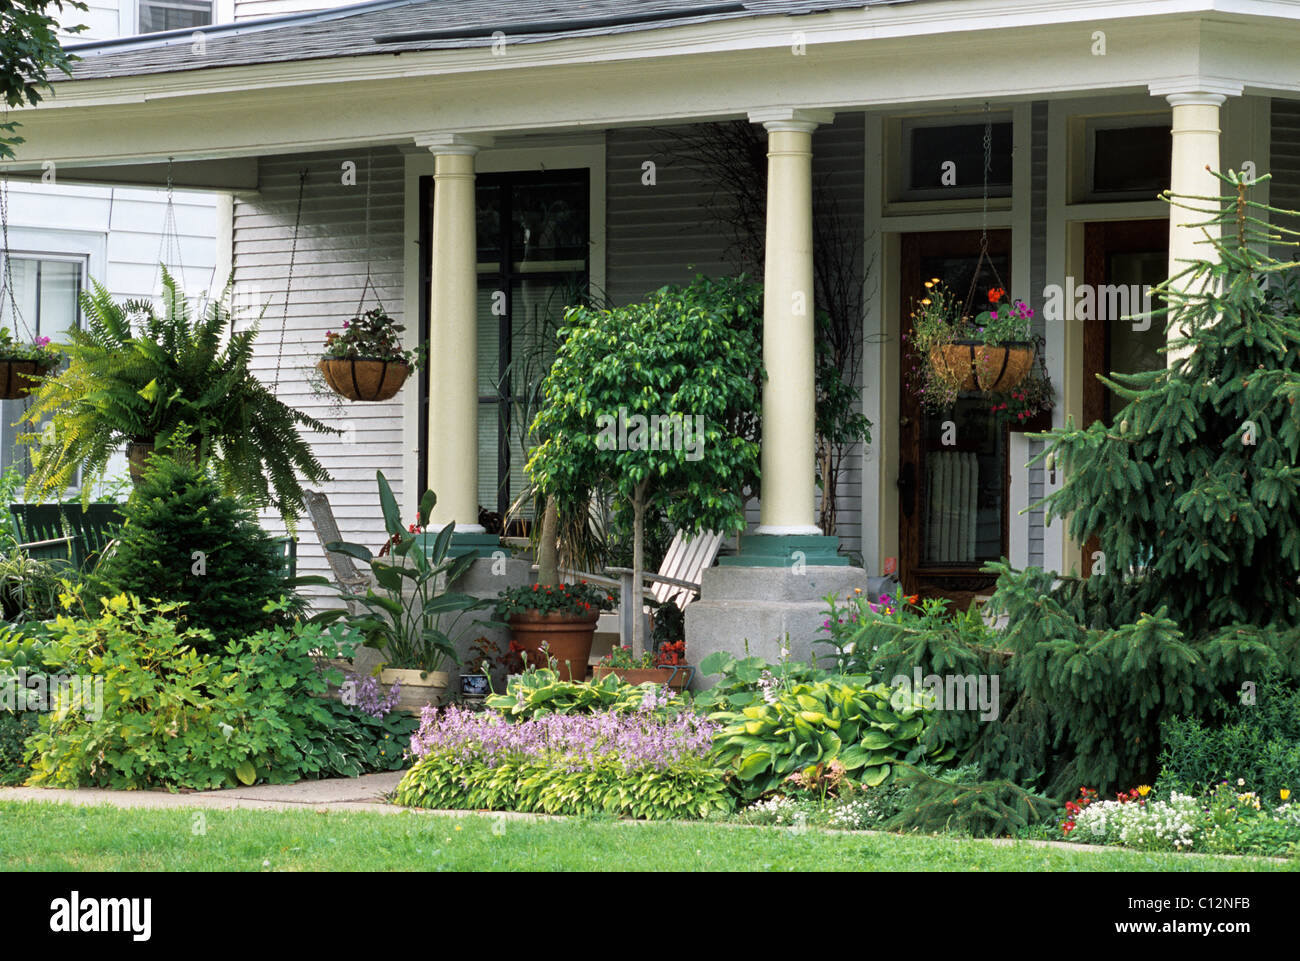 front porch or veranda of 19th century american home